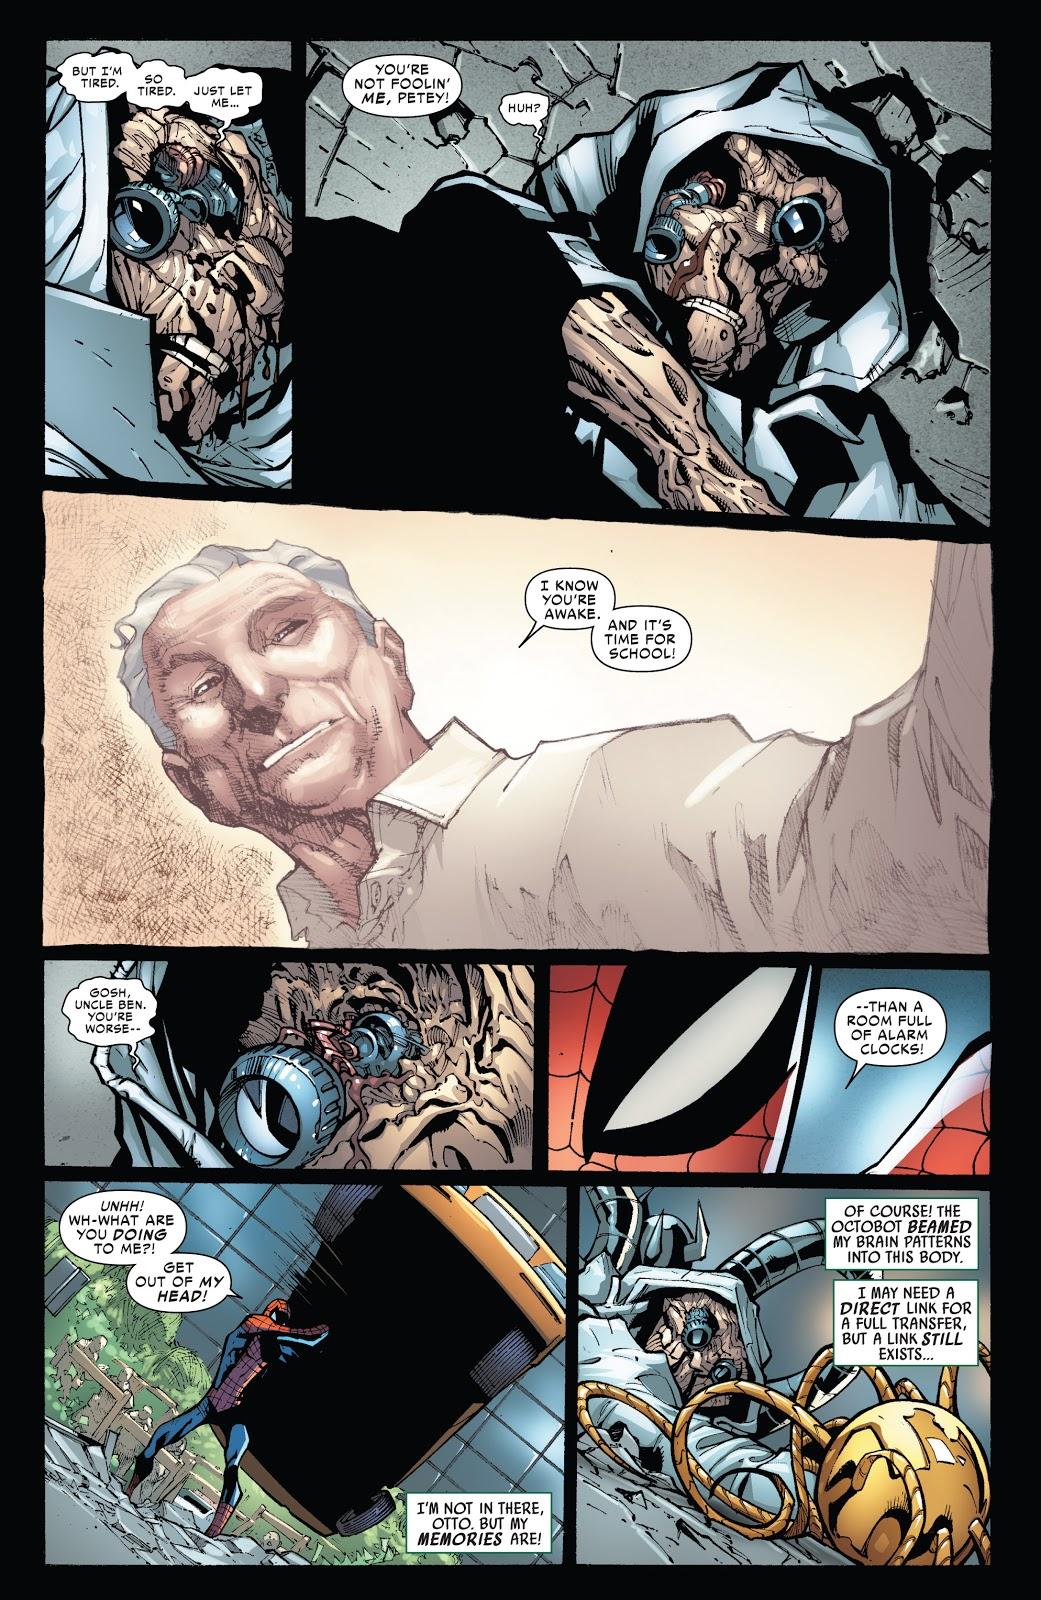 How Doctor Octopus Became The Superior Spider-Man